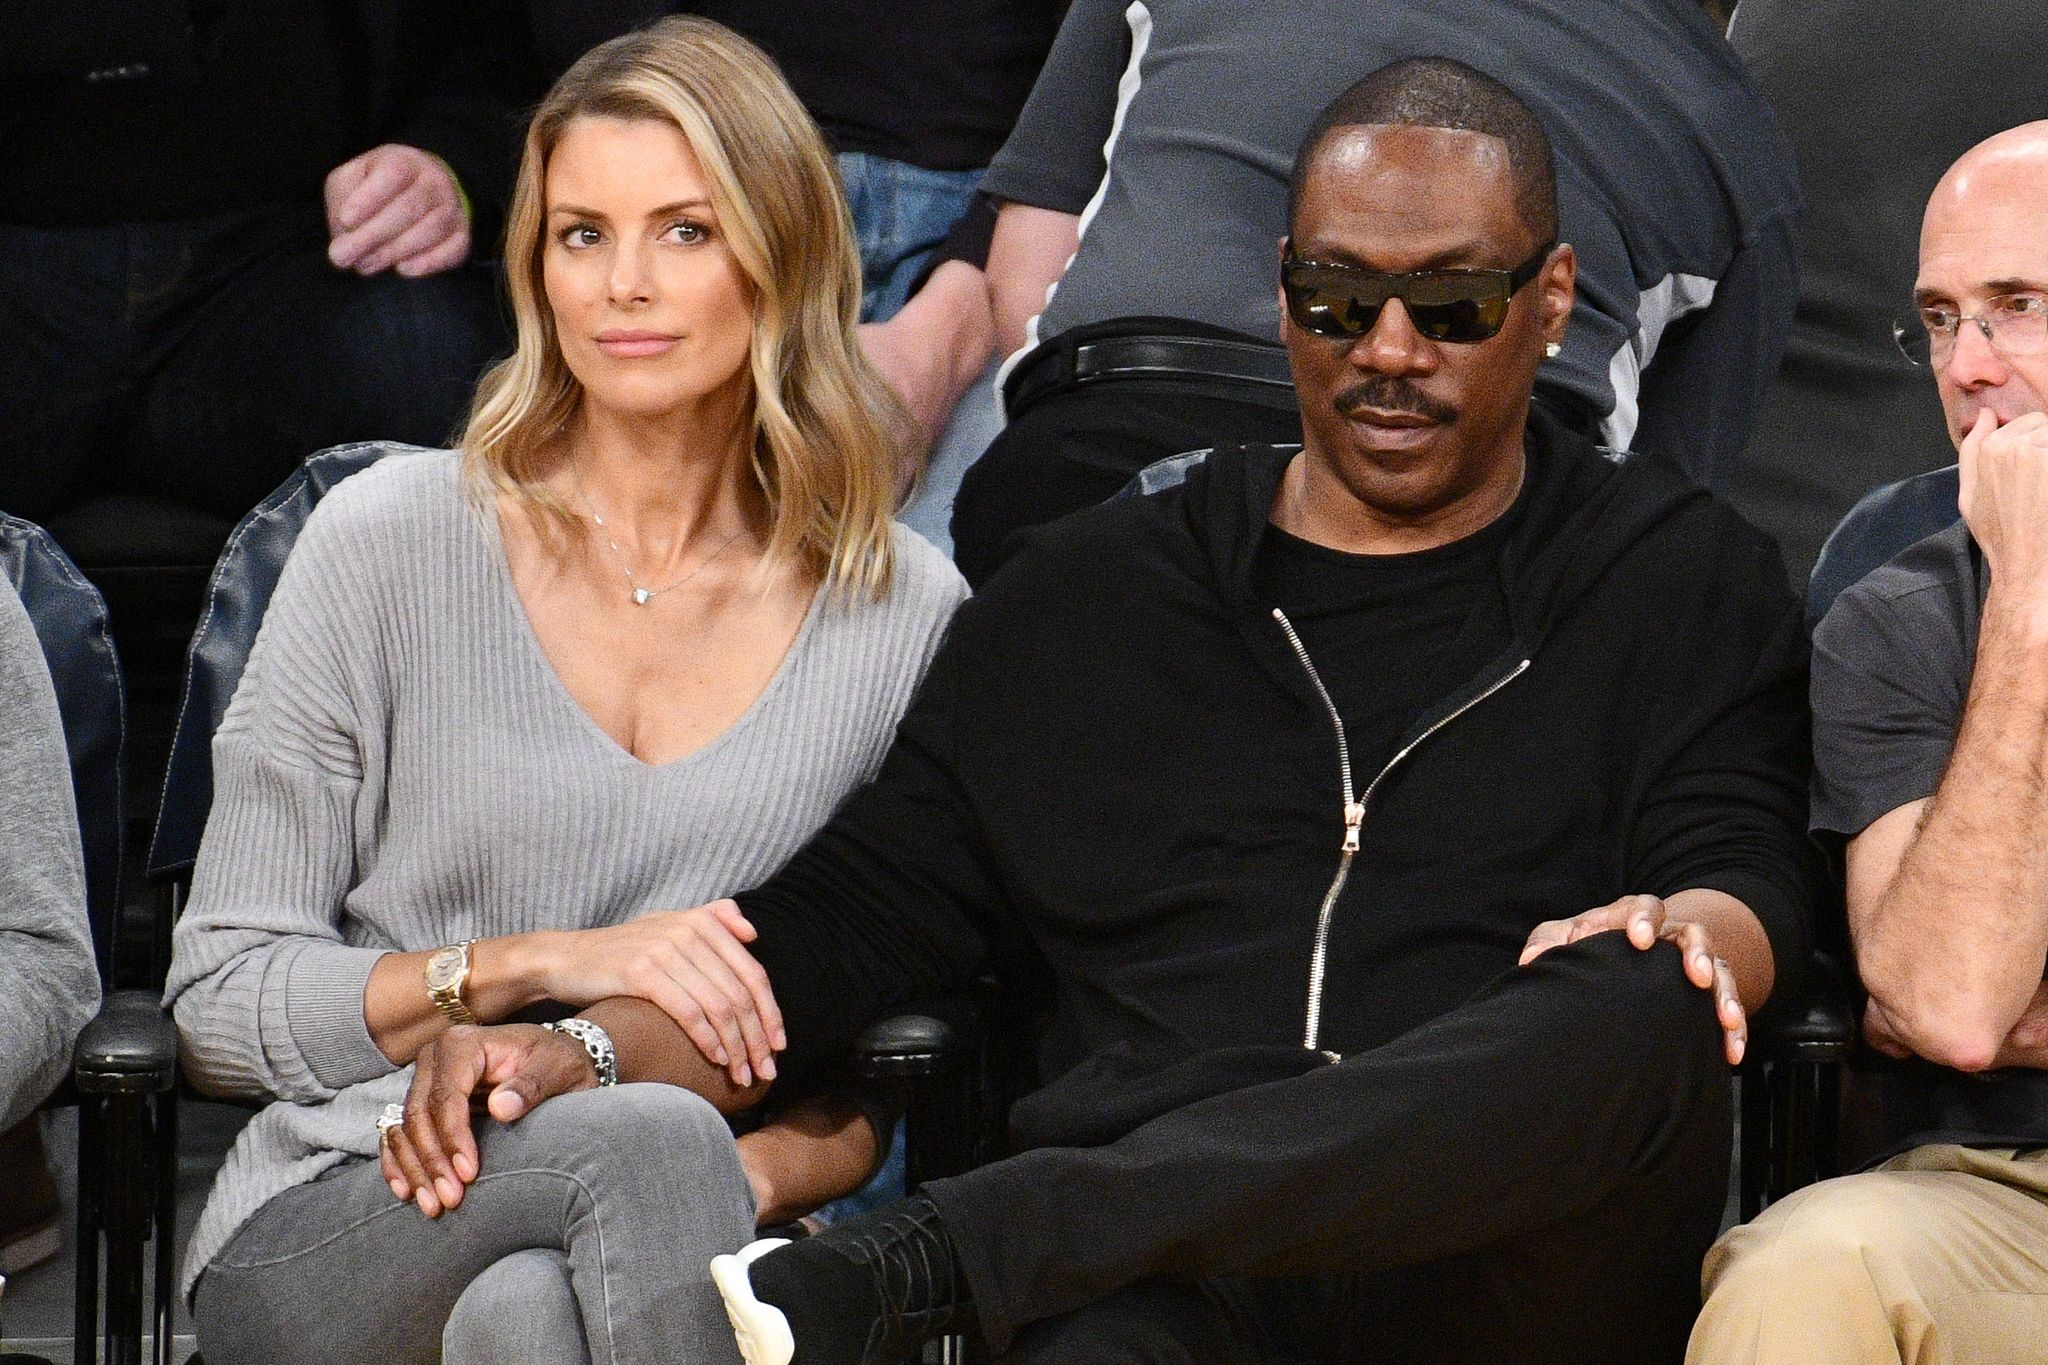 Eddie Murphy and Paige Butcher at a basketball game between the Lakers and the Utah Jazz in 2018 in Los Angeles | Source: Getty Images